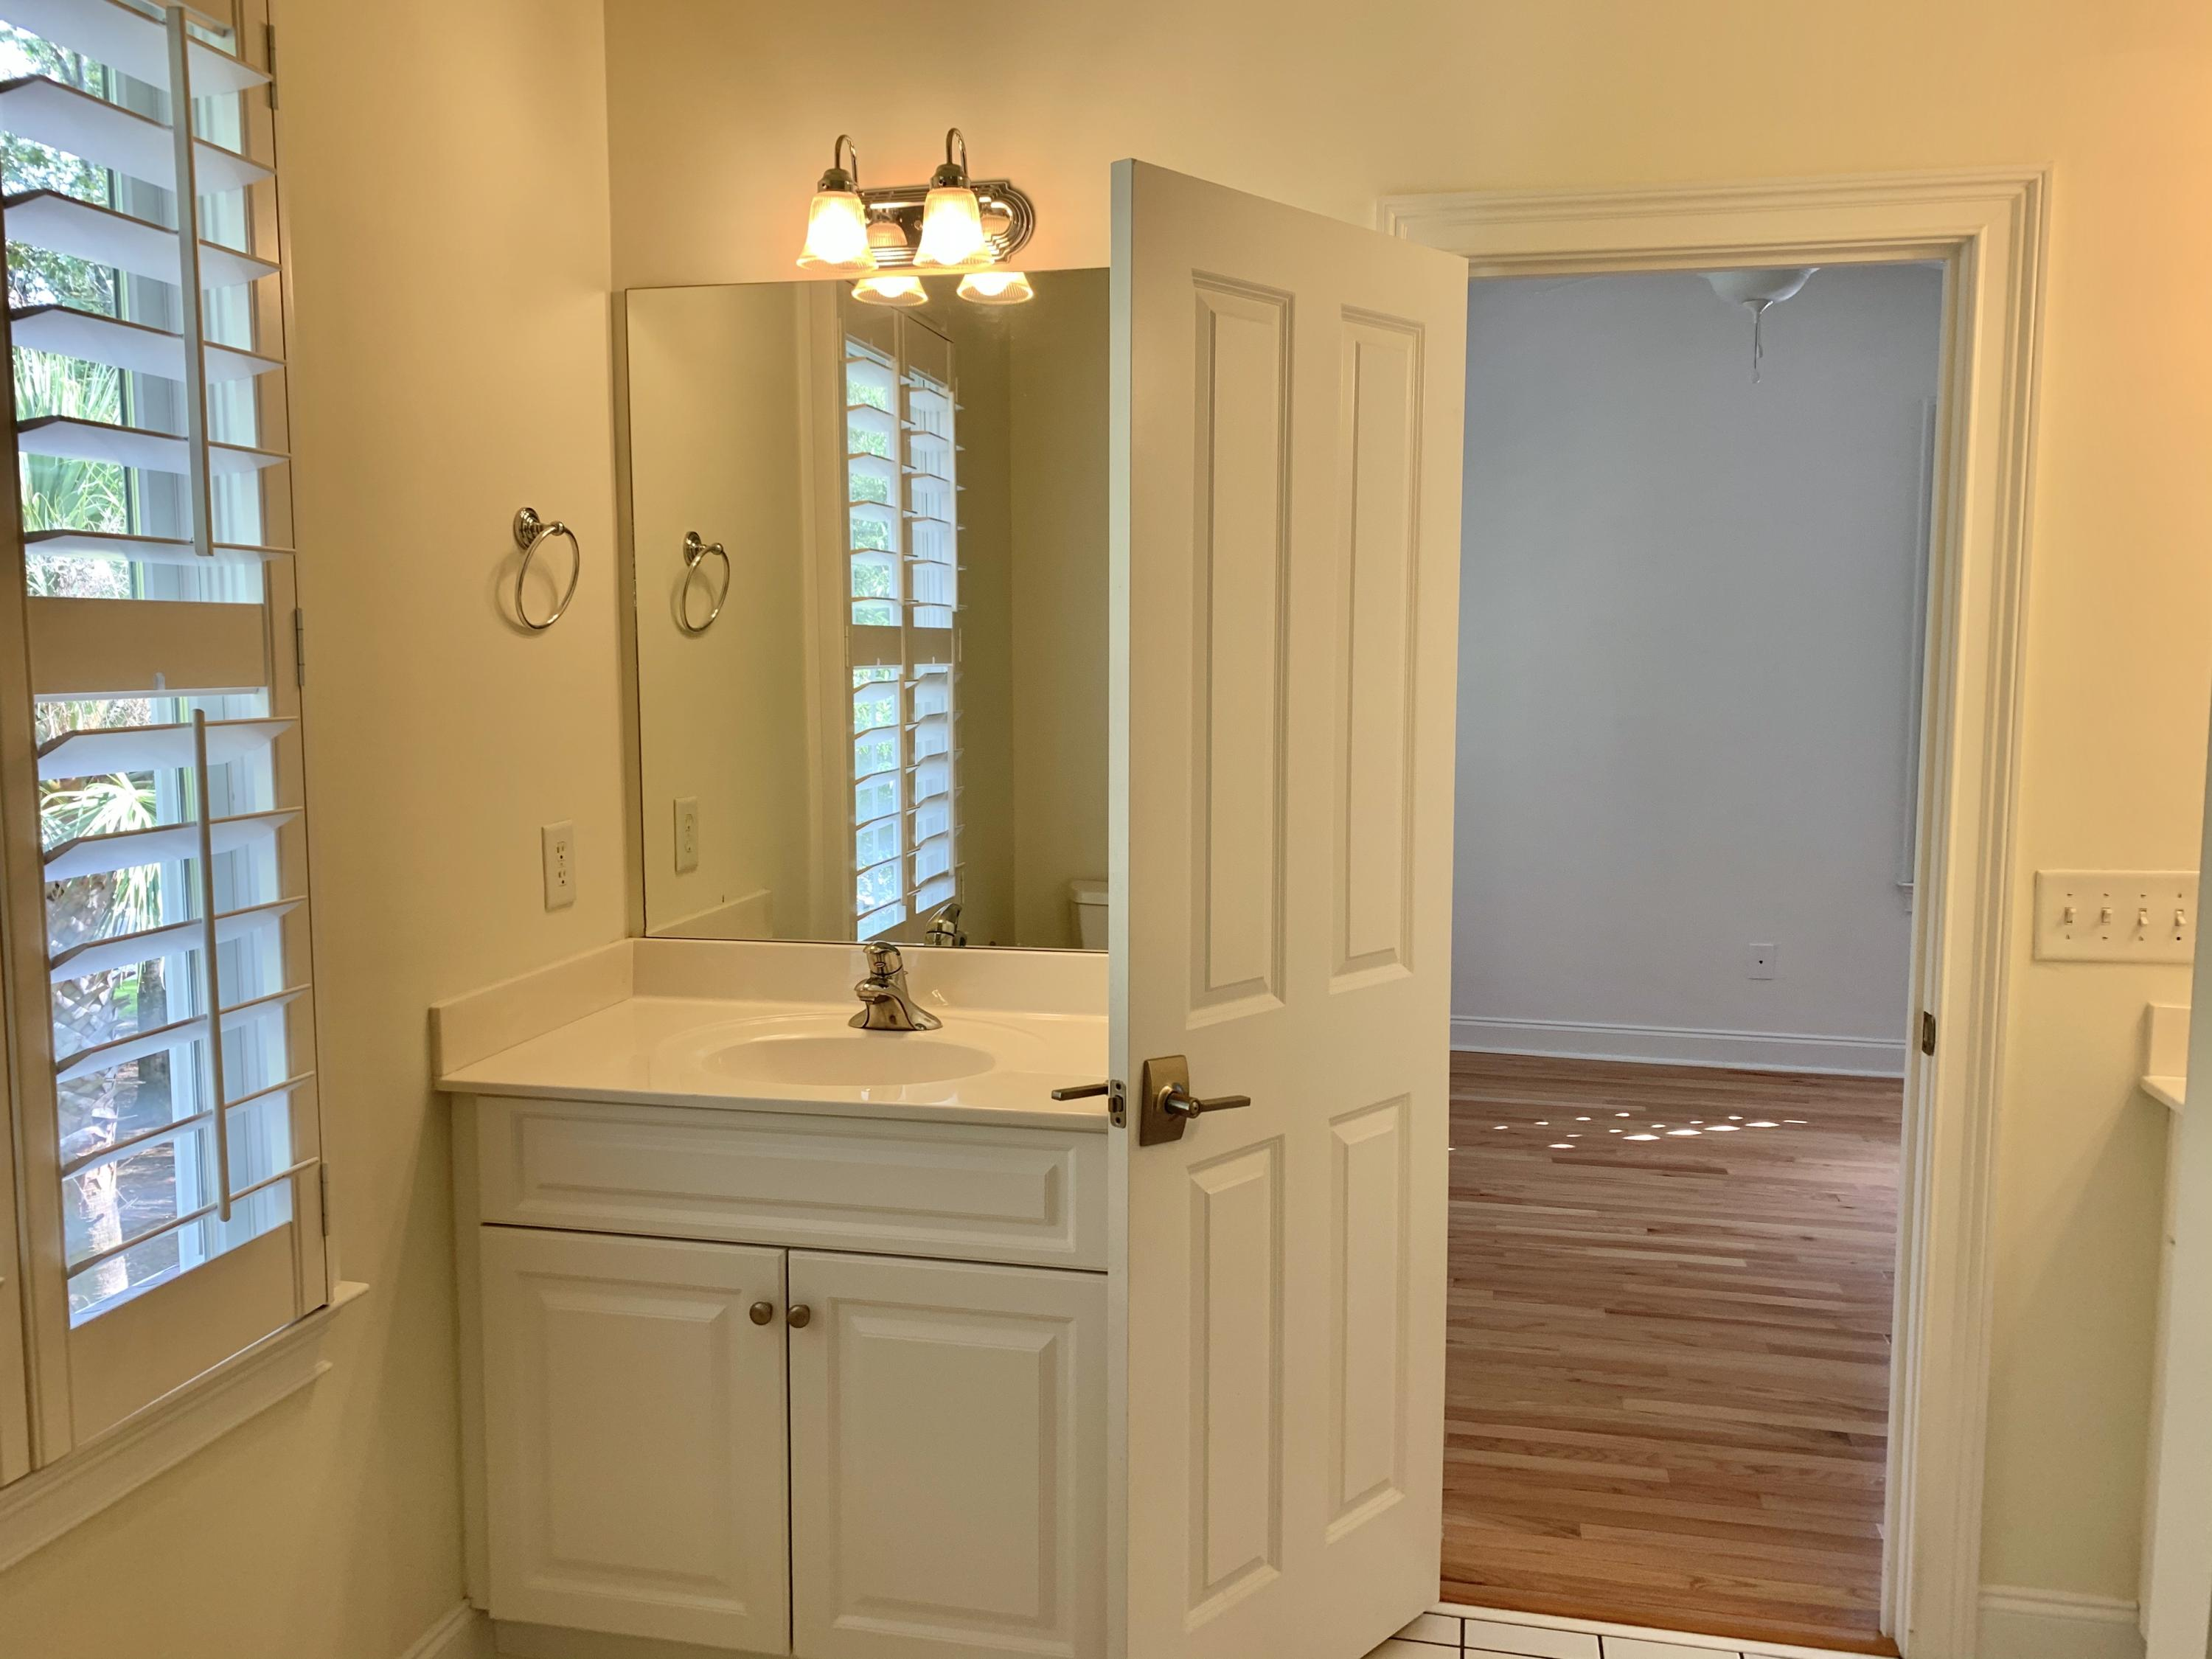 Dunes West Homes For Sale - 1769 Greenspoint, Mount Pleasant, SC - 24